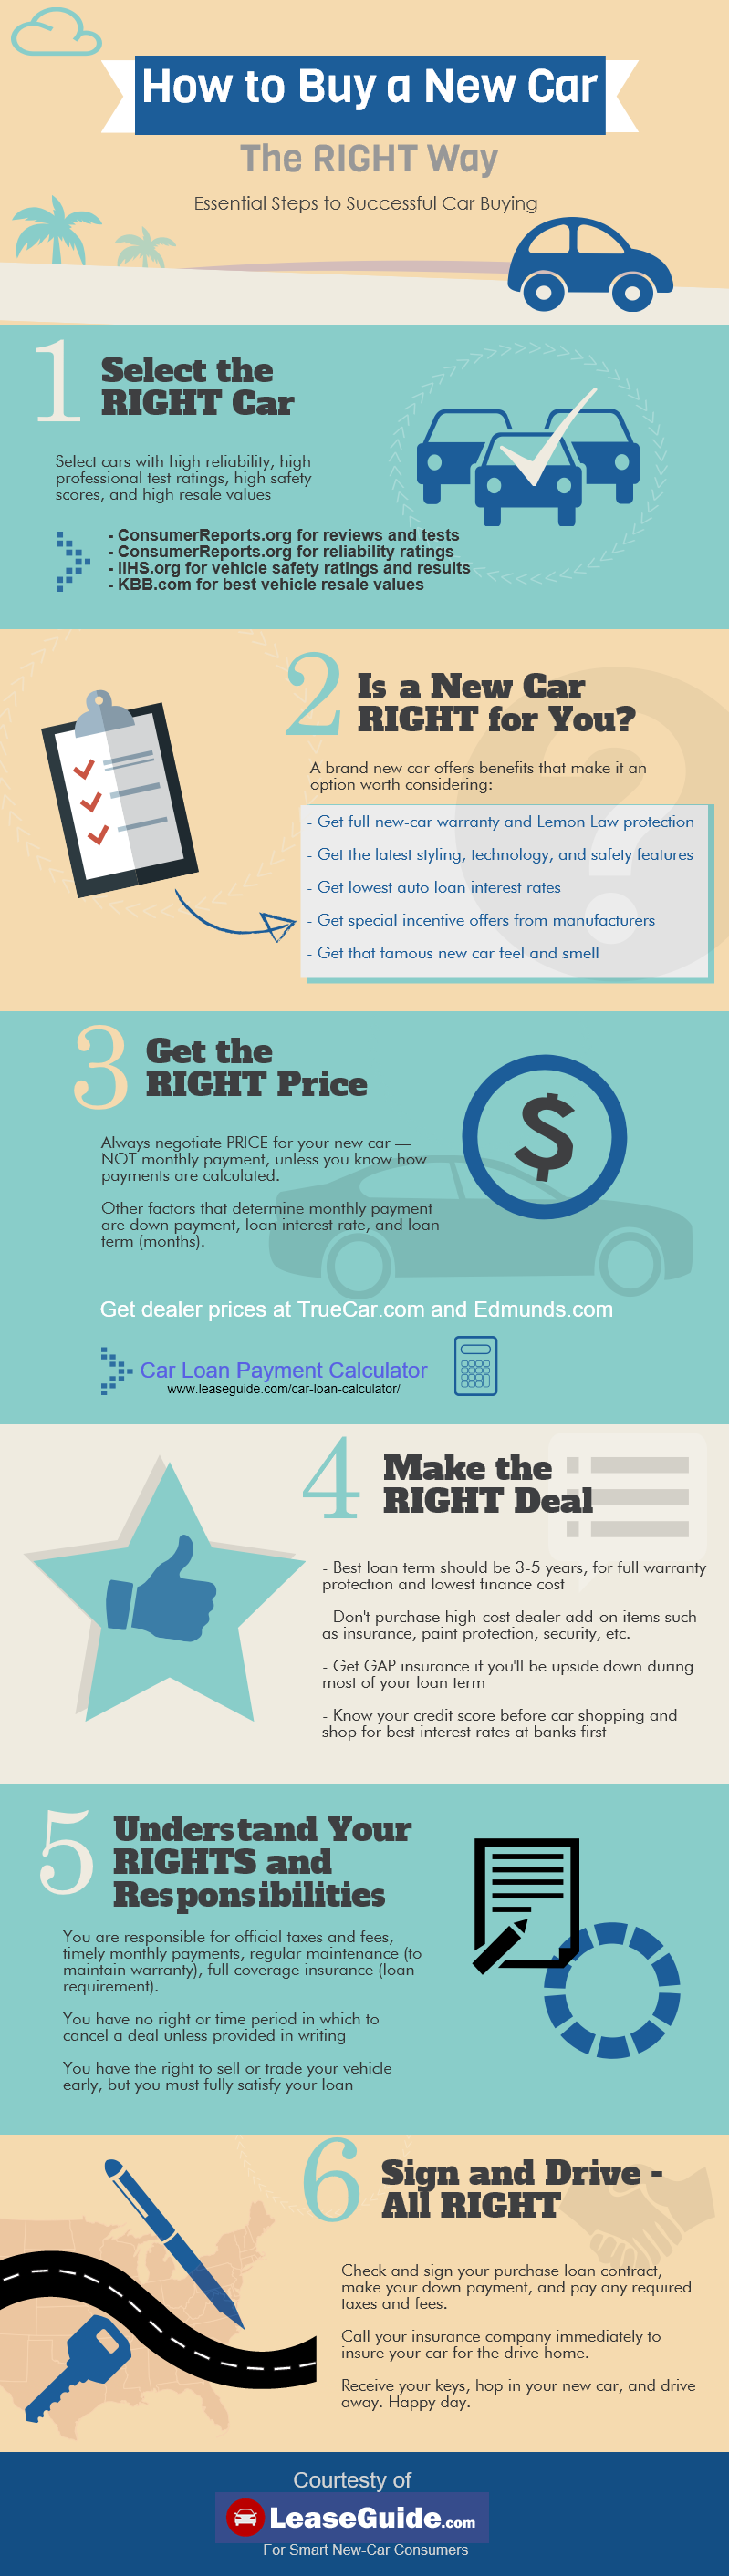 how to buy a new car infographic